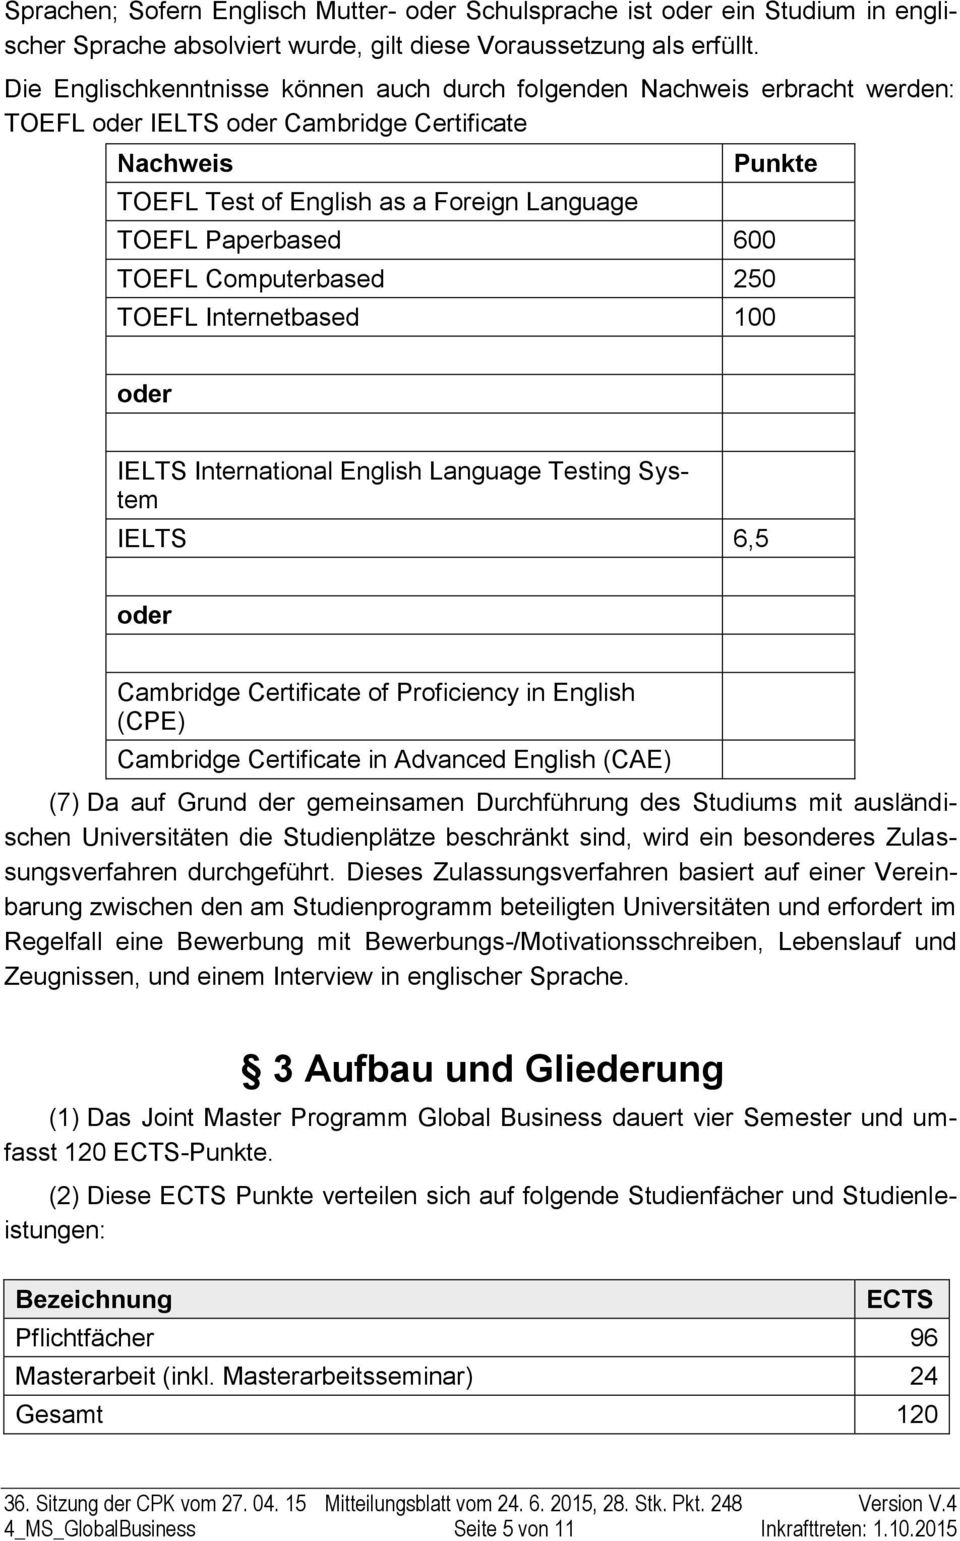 600 TOEFL Computerbased 250 TOEFL Internetbased 100 oder IELTS International English Language Testing System IELTS 6,5 oder Cambridge Certificate of Proficiency in English (CPE) Cambridge Certificate